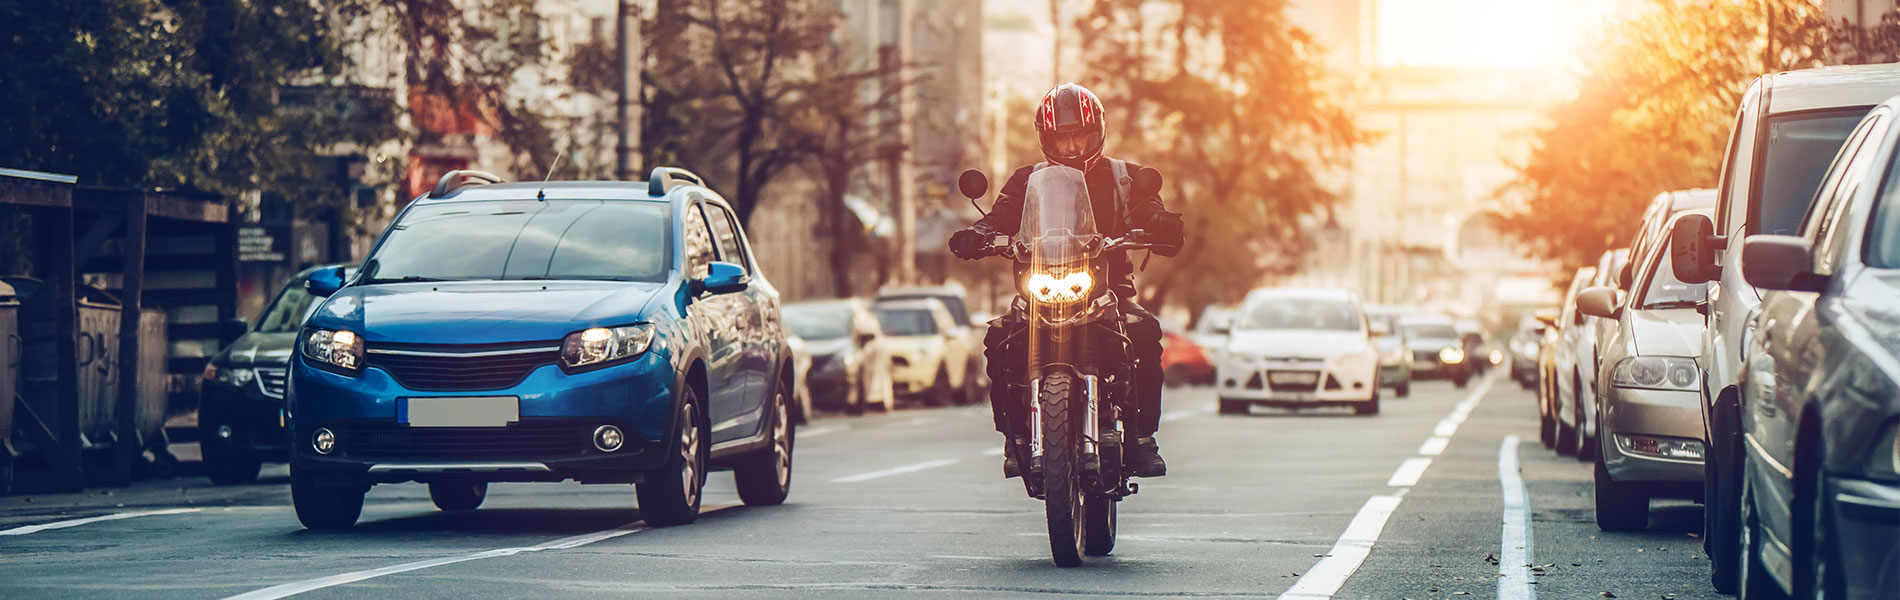 Seminole County Motorcycle Accident Attorney